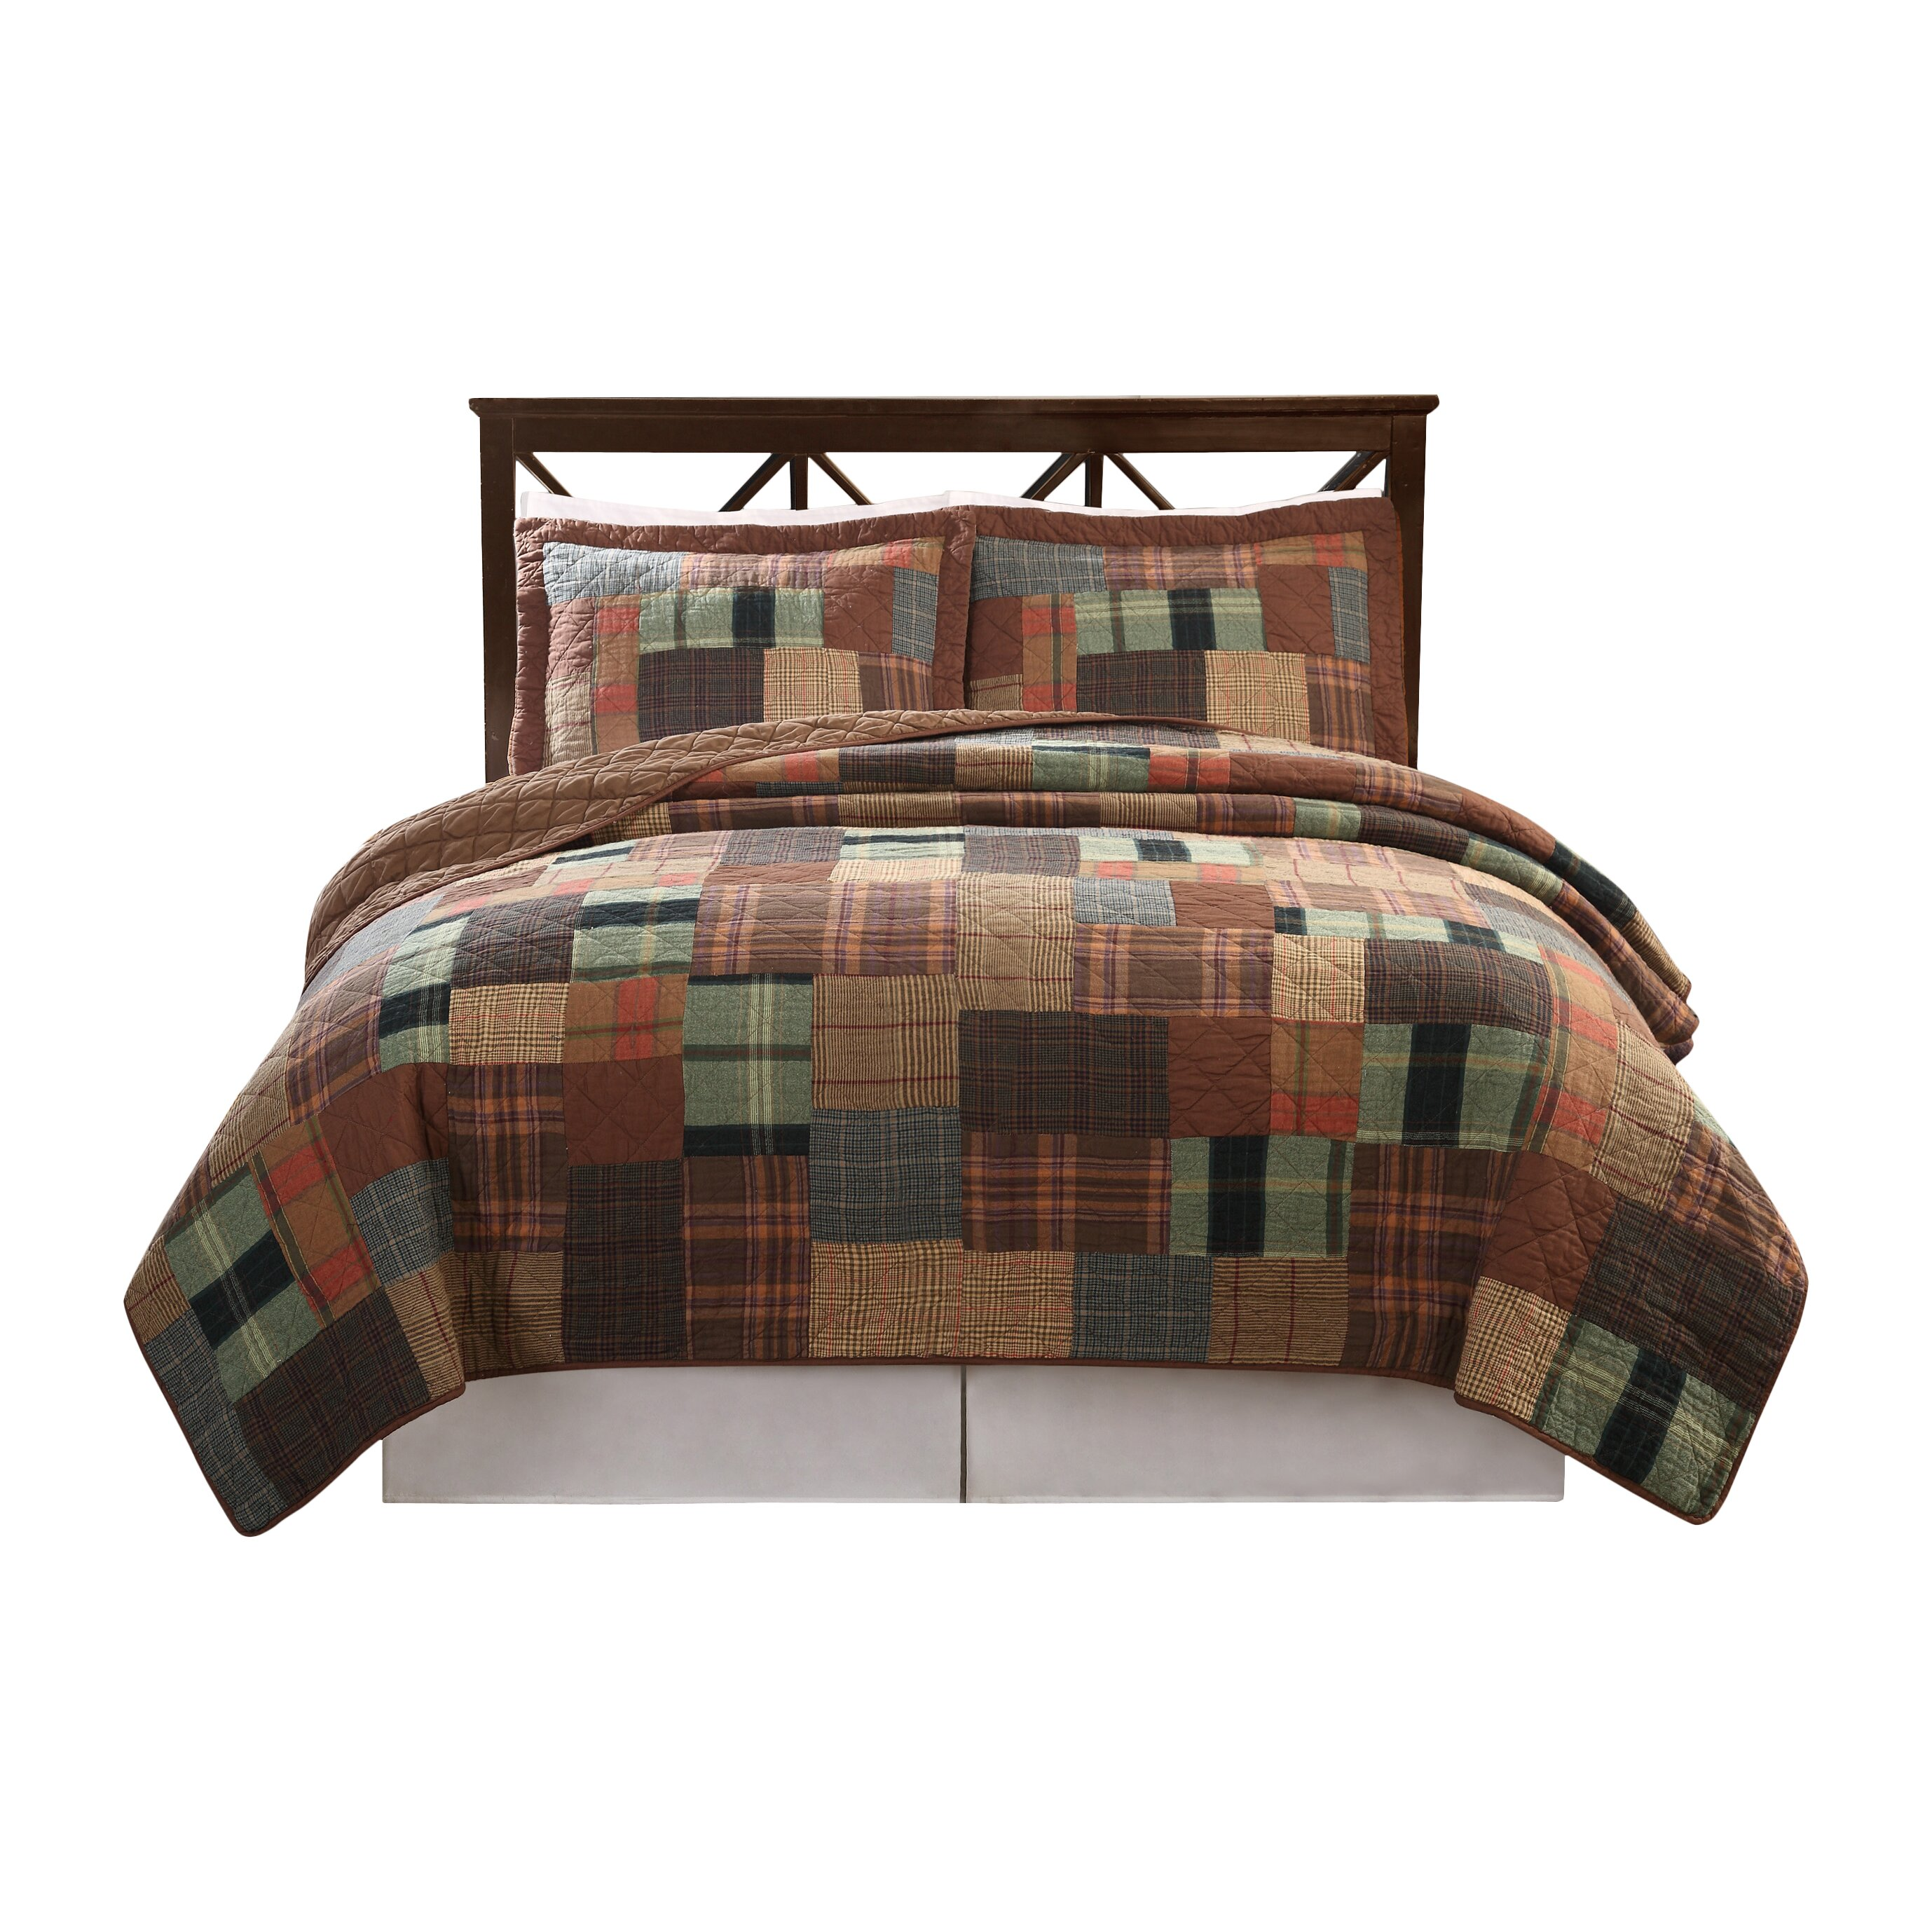 Classic home jewel tone 3 piece quilt set reviews wayfair for Classic homes reviews